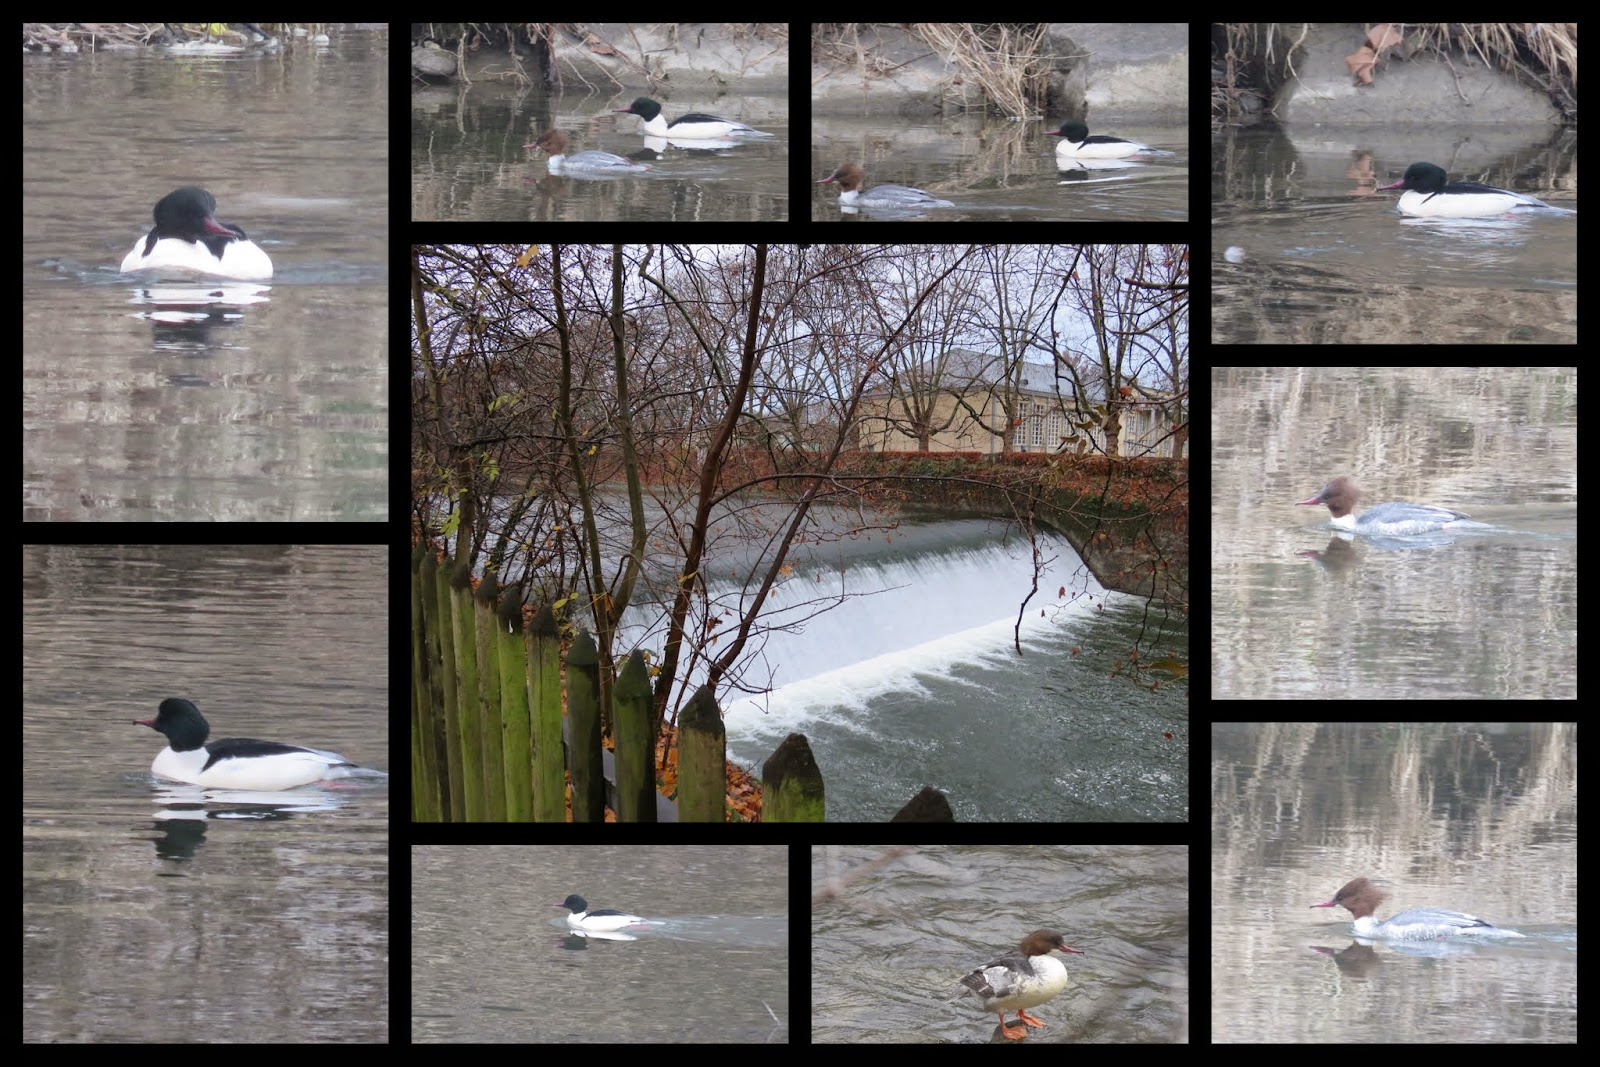 Goosanders - ducks - on the Sihl River in Zurich